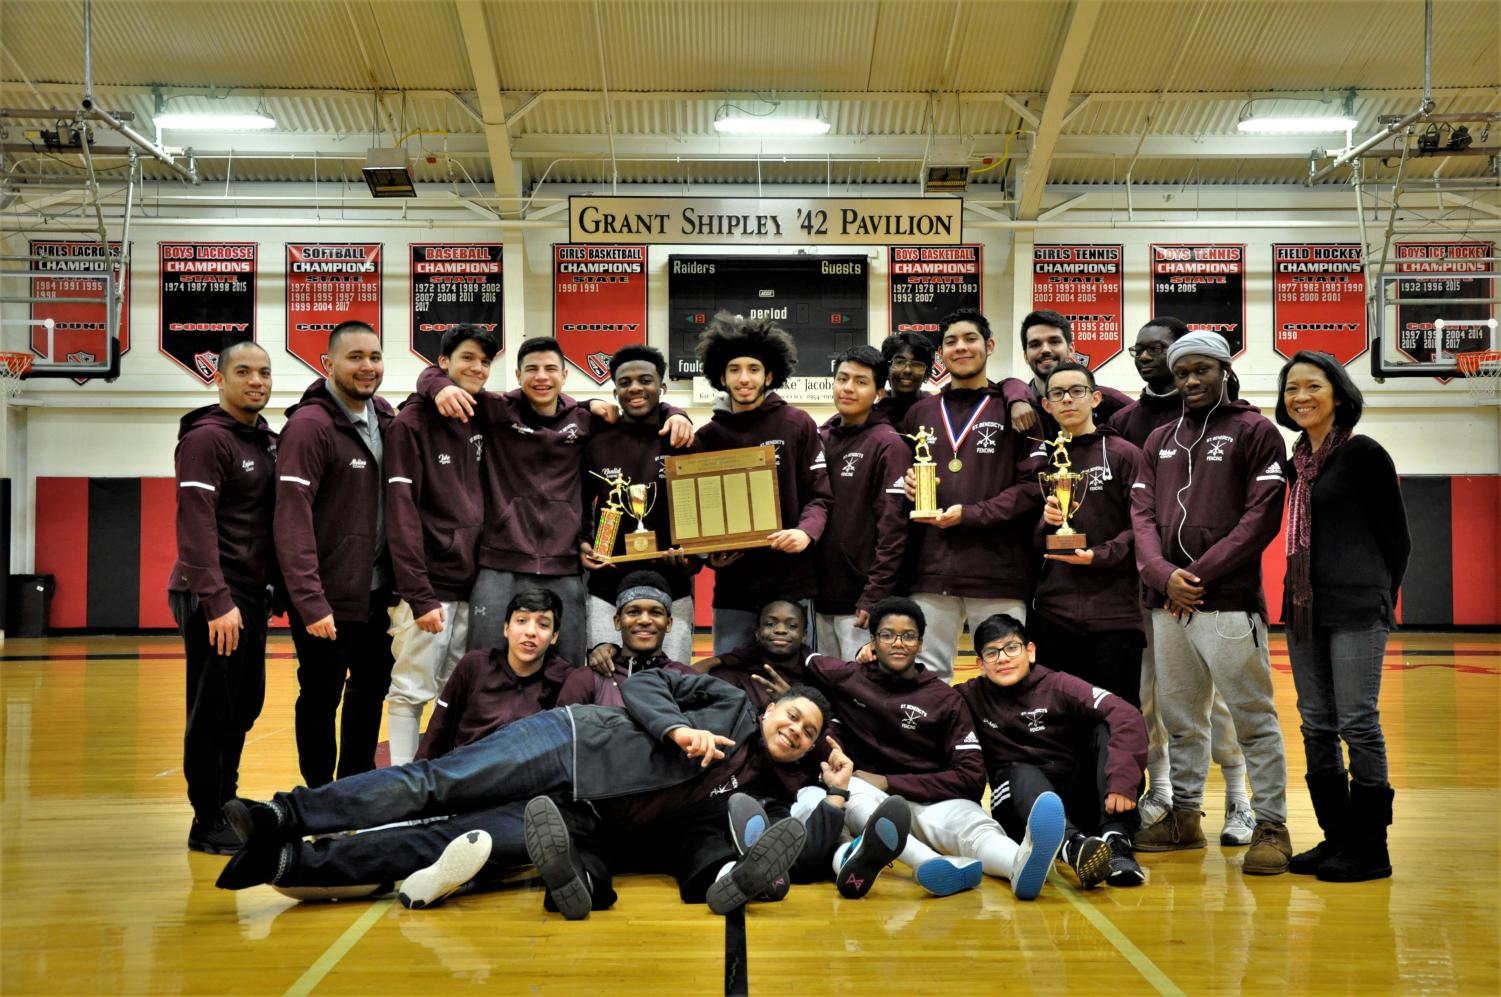 The fencing team, at last, capped its season, with a first place finish at State Preps.